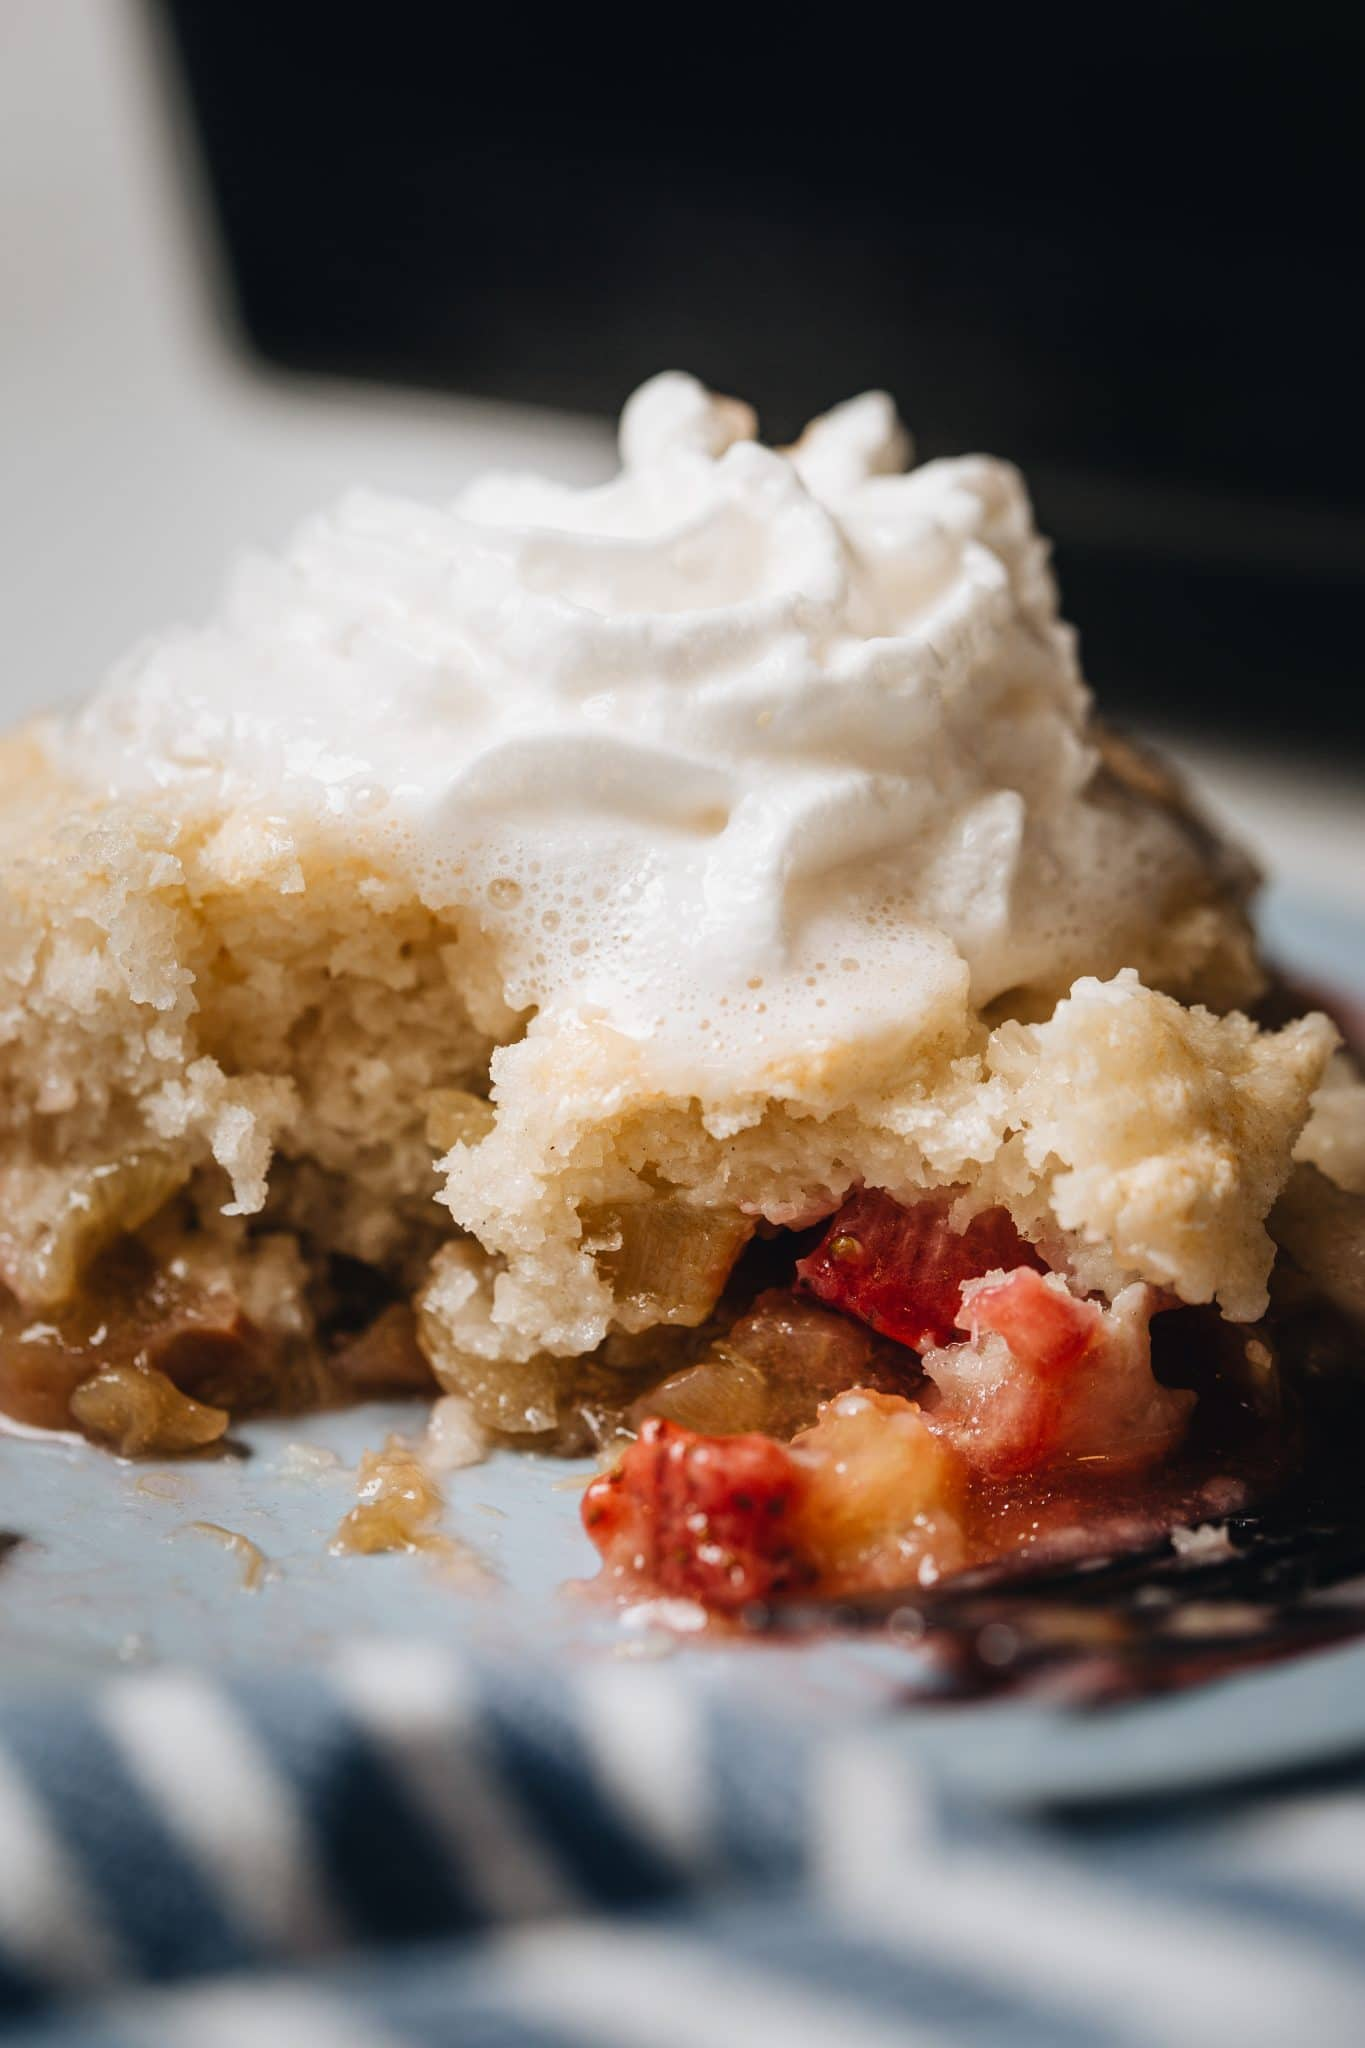 Side image of rhubarb cobbler topped with whipped cream.